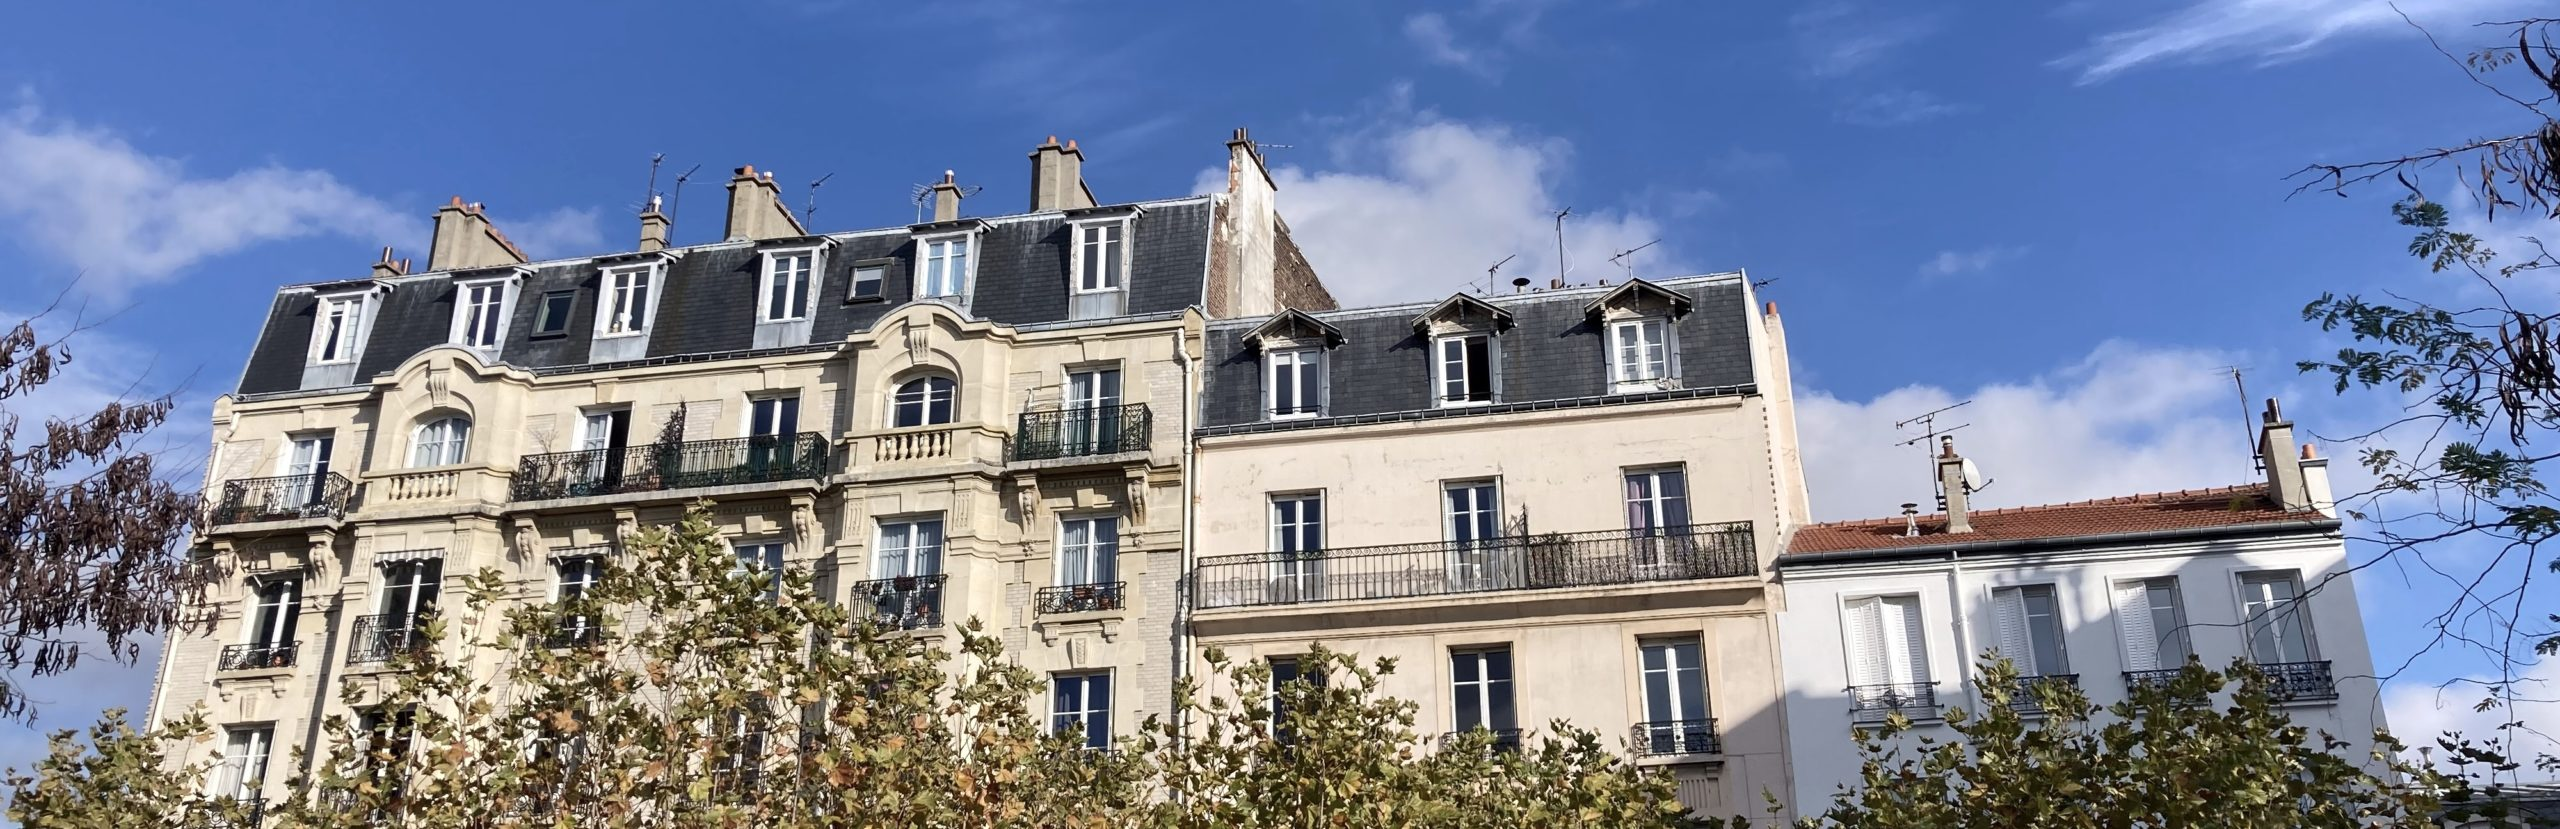 Chasseur Immobilier Bois Colombes